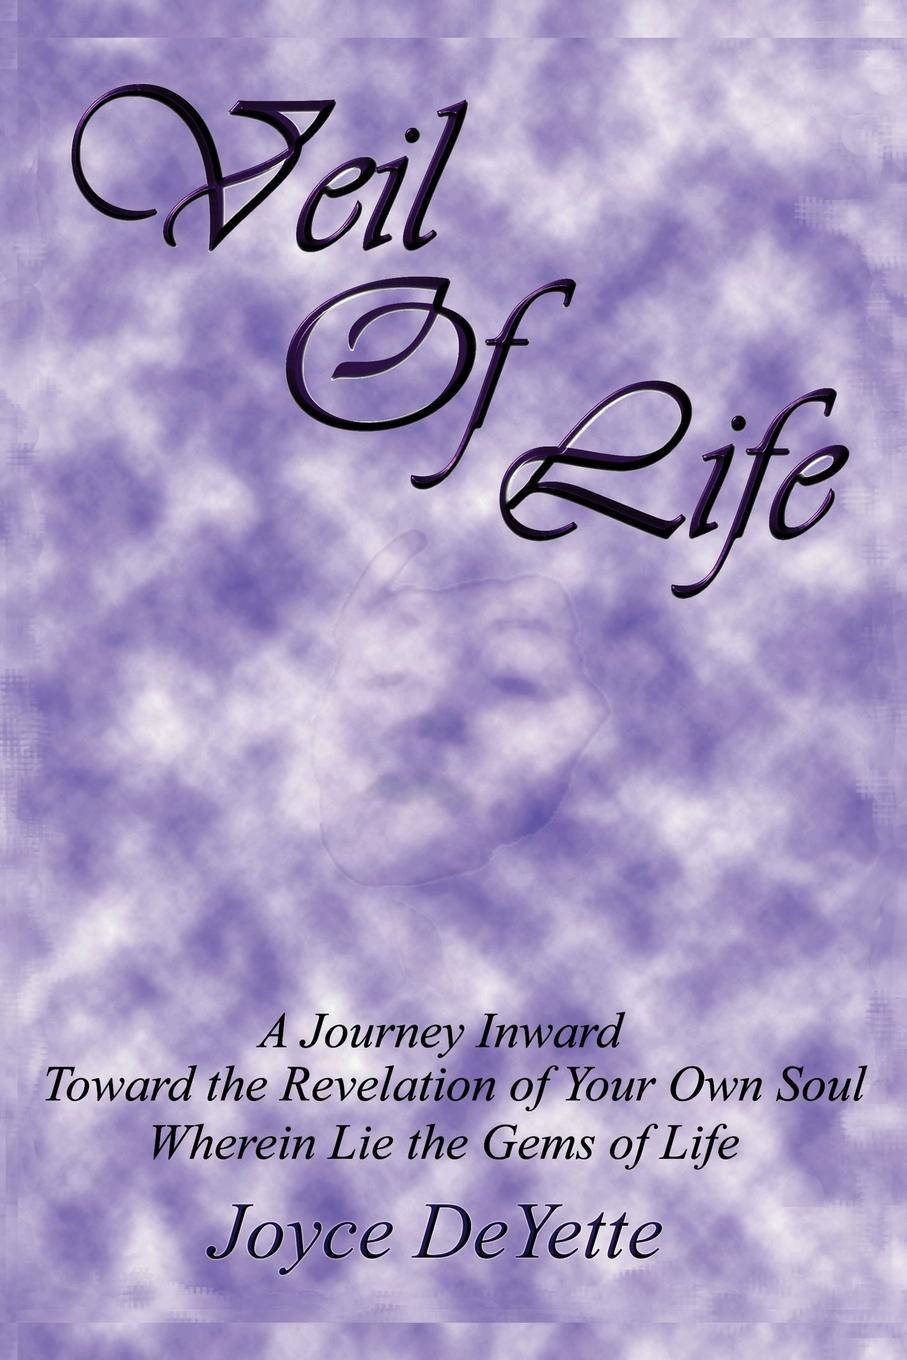 Joyce Deyette Veil Of Life A Journey inward toward the unknown revelation of your own Soul wherein lie the gems of life